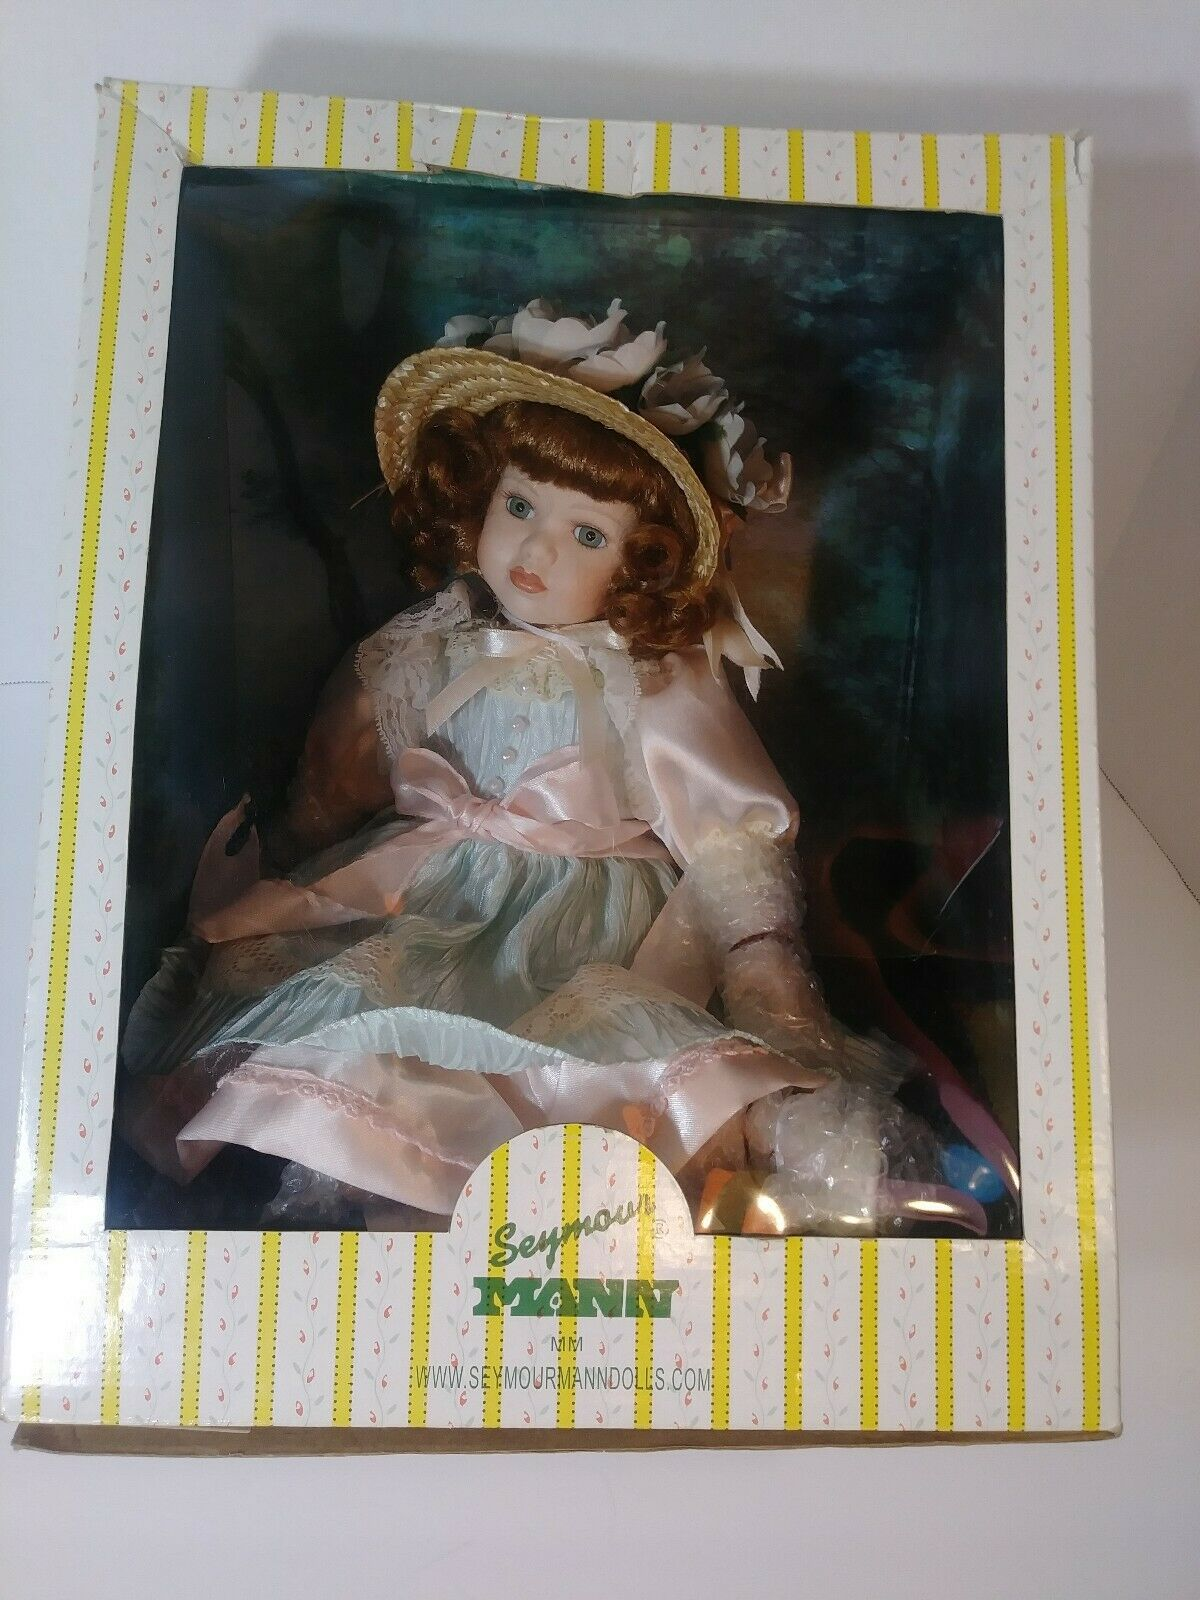 Seymour Mann Signature Series Doll SJ 912 M , New  Girl with bonnet Hand painted